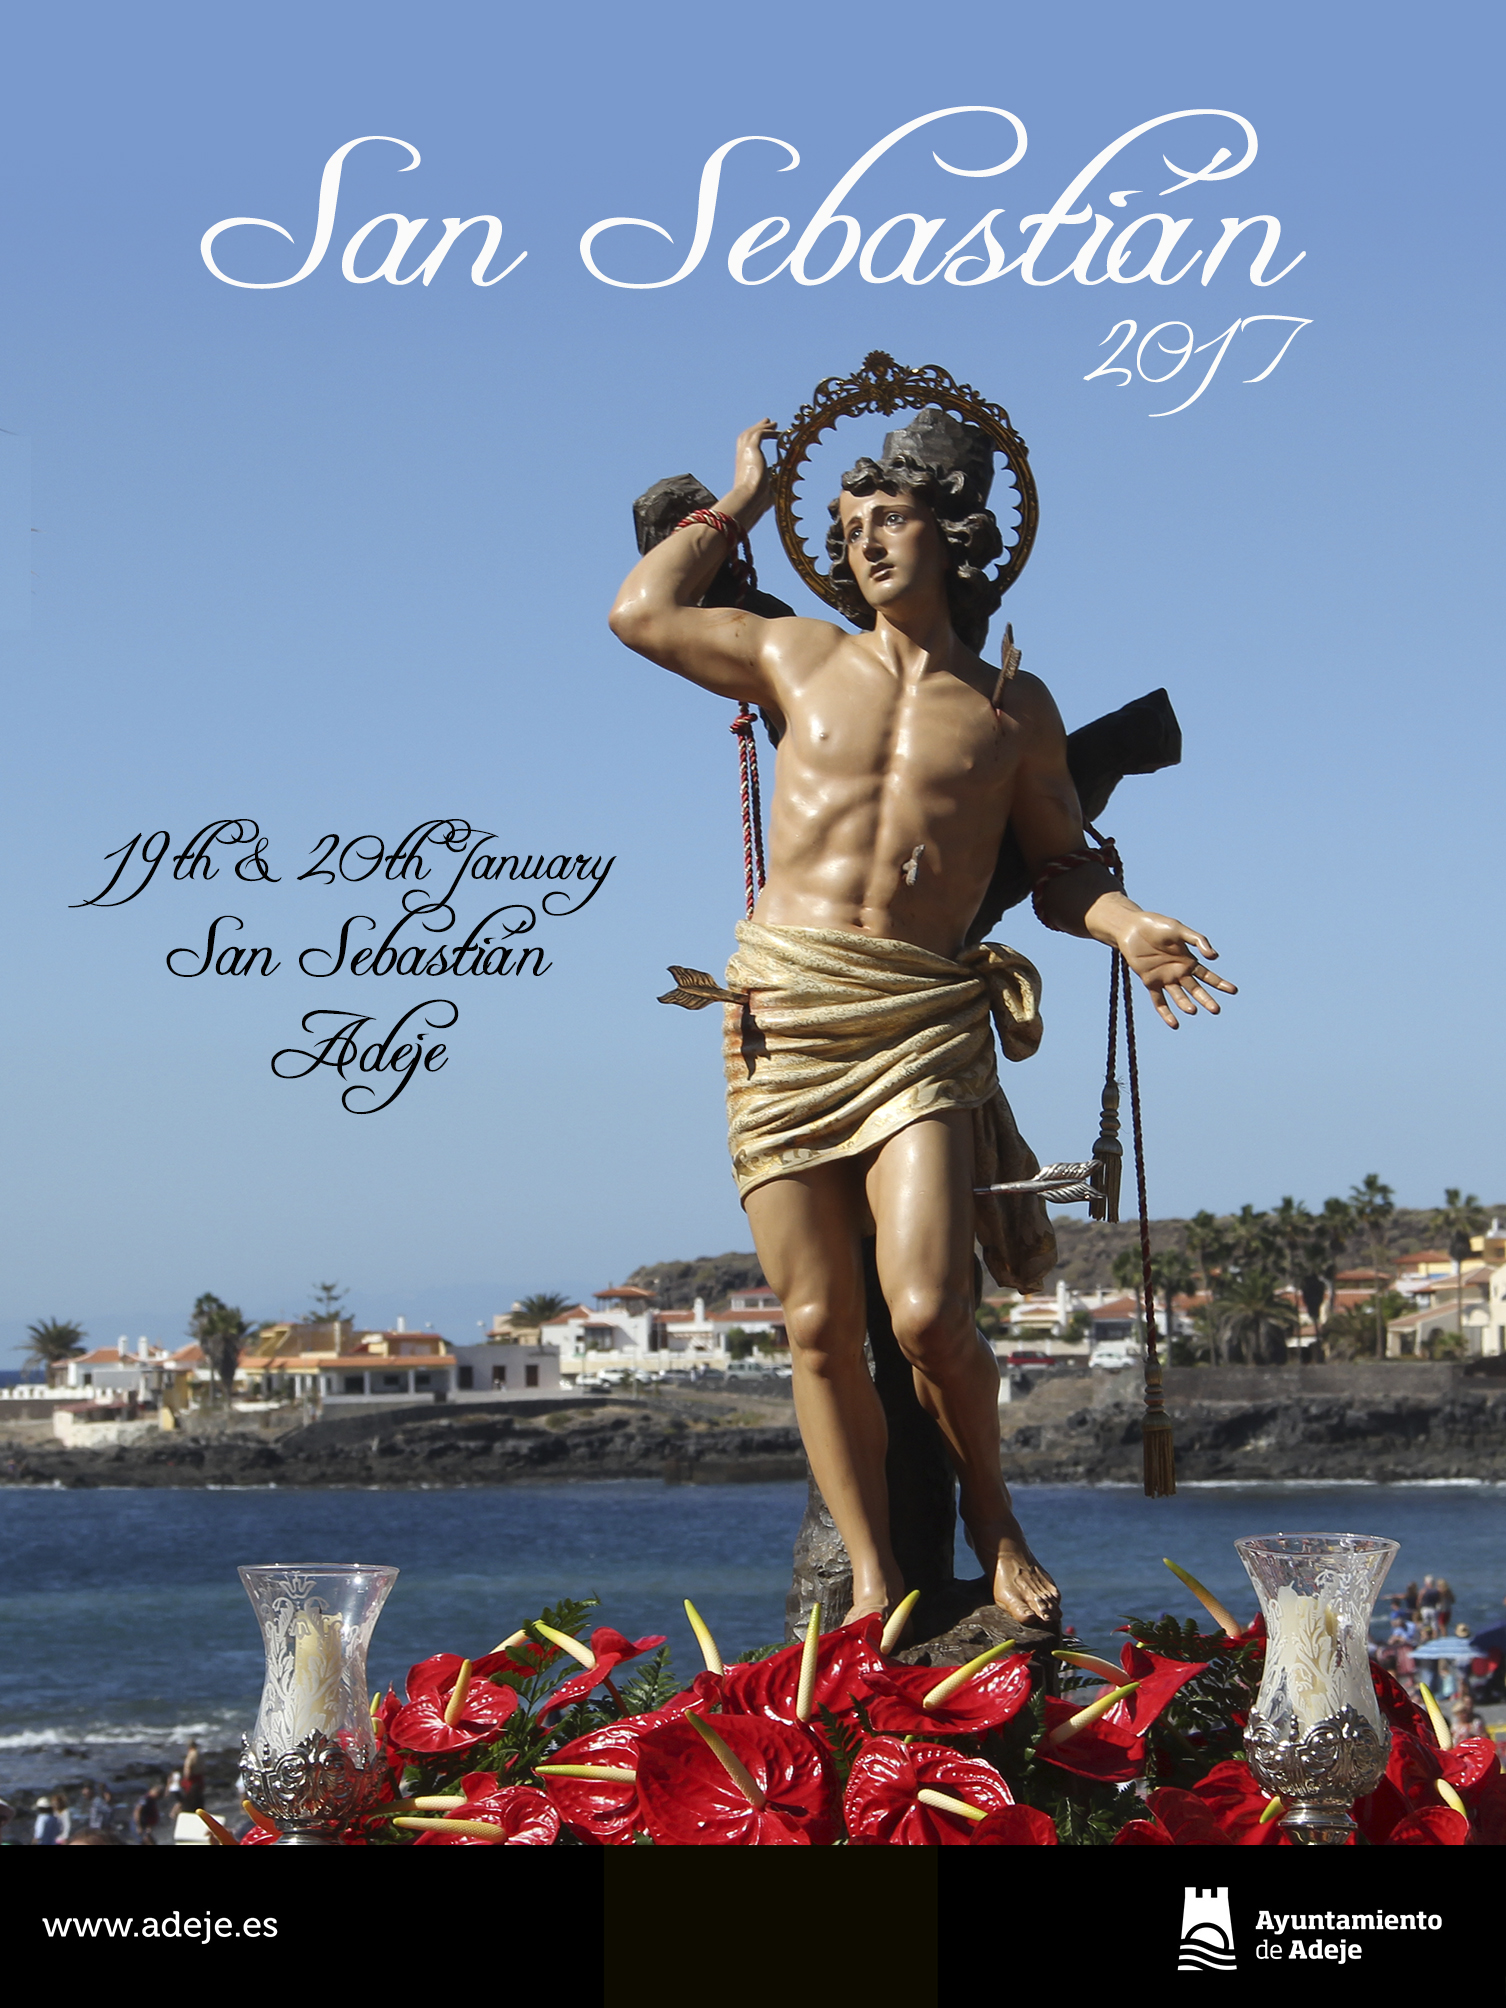 On January 20th 2017 Adeje celebrates San Sebastián, one of the oldest fiestas in Tenerife